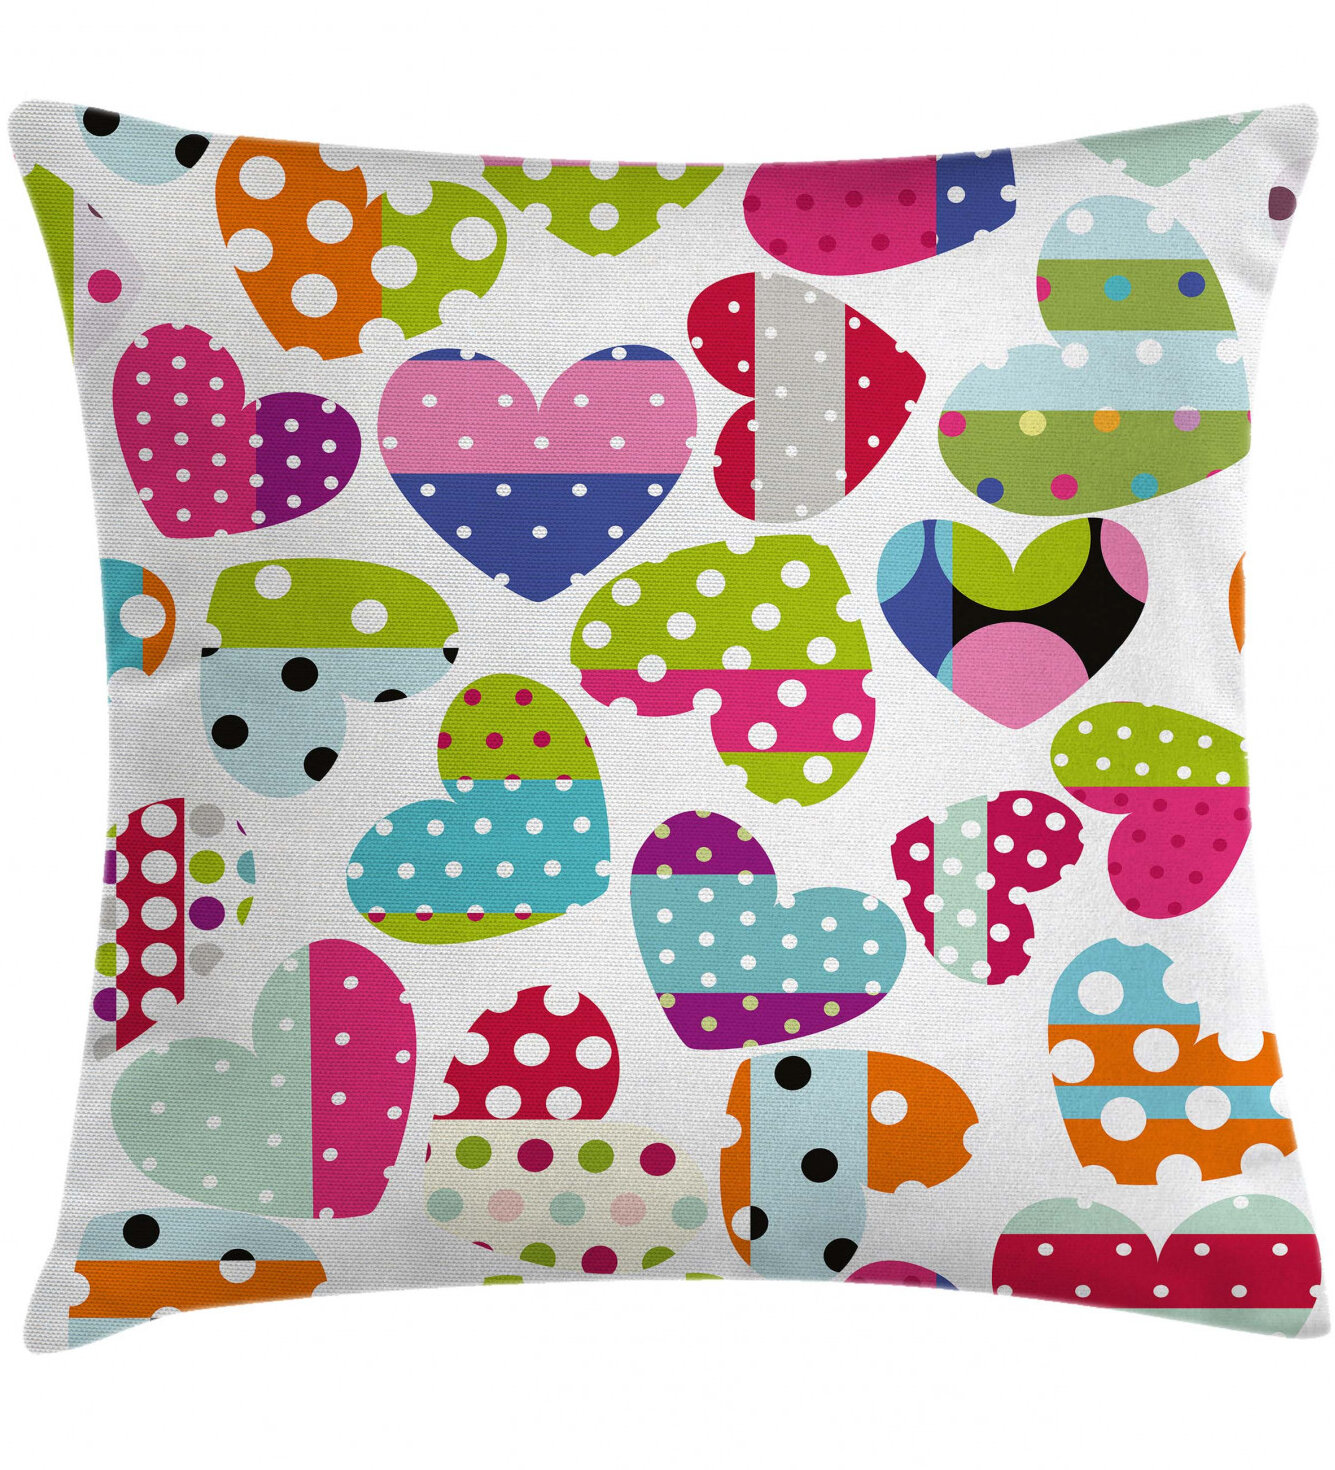 East Urban Home Ambesonne Colorful Throw Pillow Cushion Cover Heart Shapes With Patches And Polka Dots Cheerful Pattern Design Artwork Decorative Square Accent Pillow Case 26 X 26 Multicolor Wayfair